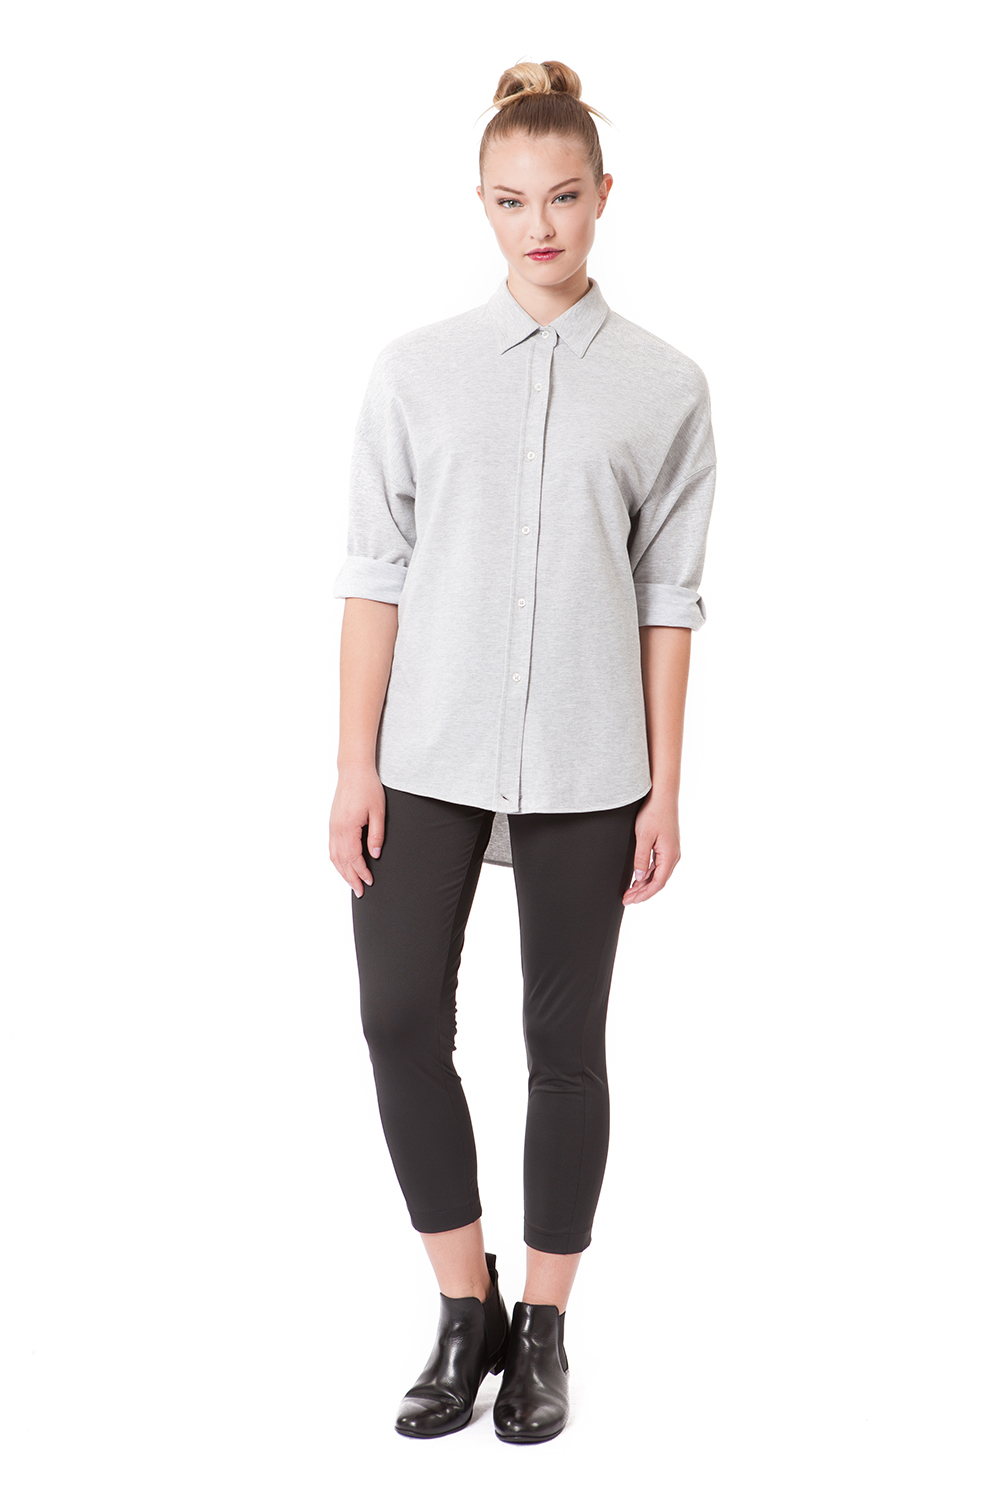 BUKI Ex-Boyfriend Shirt - BUKI Luxe Sportswear Collection